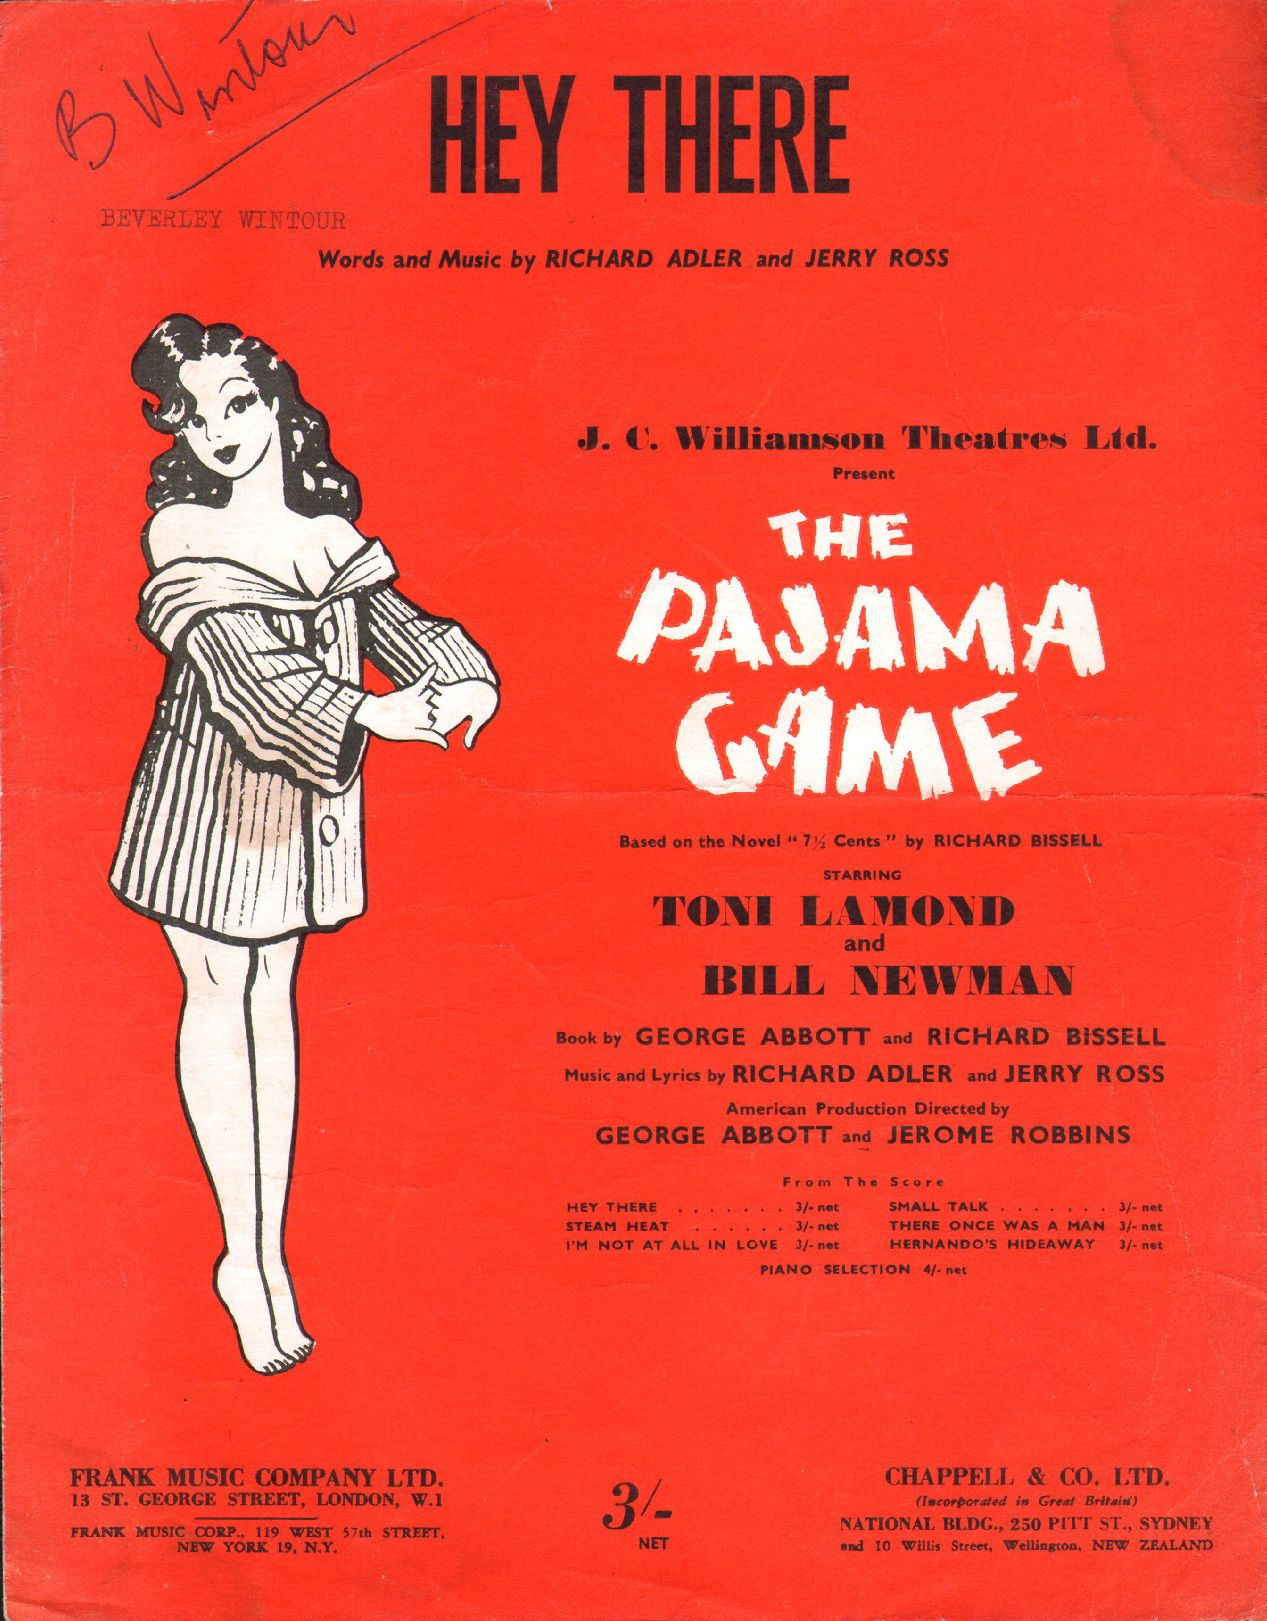 Hey There. 1954. Words & Music by Richard Adler & Jerry Ross. A show tune from the musical play The Pajama Game, it was introduced by John Raitt in the original production and was subsequently recorded by a number of artists including Rosemary Clooney and  Sammy Davis. Jr. Featured here from the Australian show starring Toni Lamond & Bill Newman. Other songs from the score are; Steam Heat, Hernando's Hideaway, Small talk, There Once Was A Man and I'm Not At All In Love.